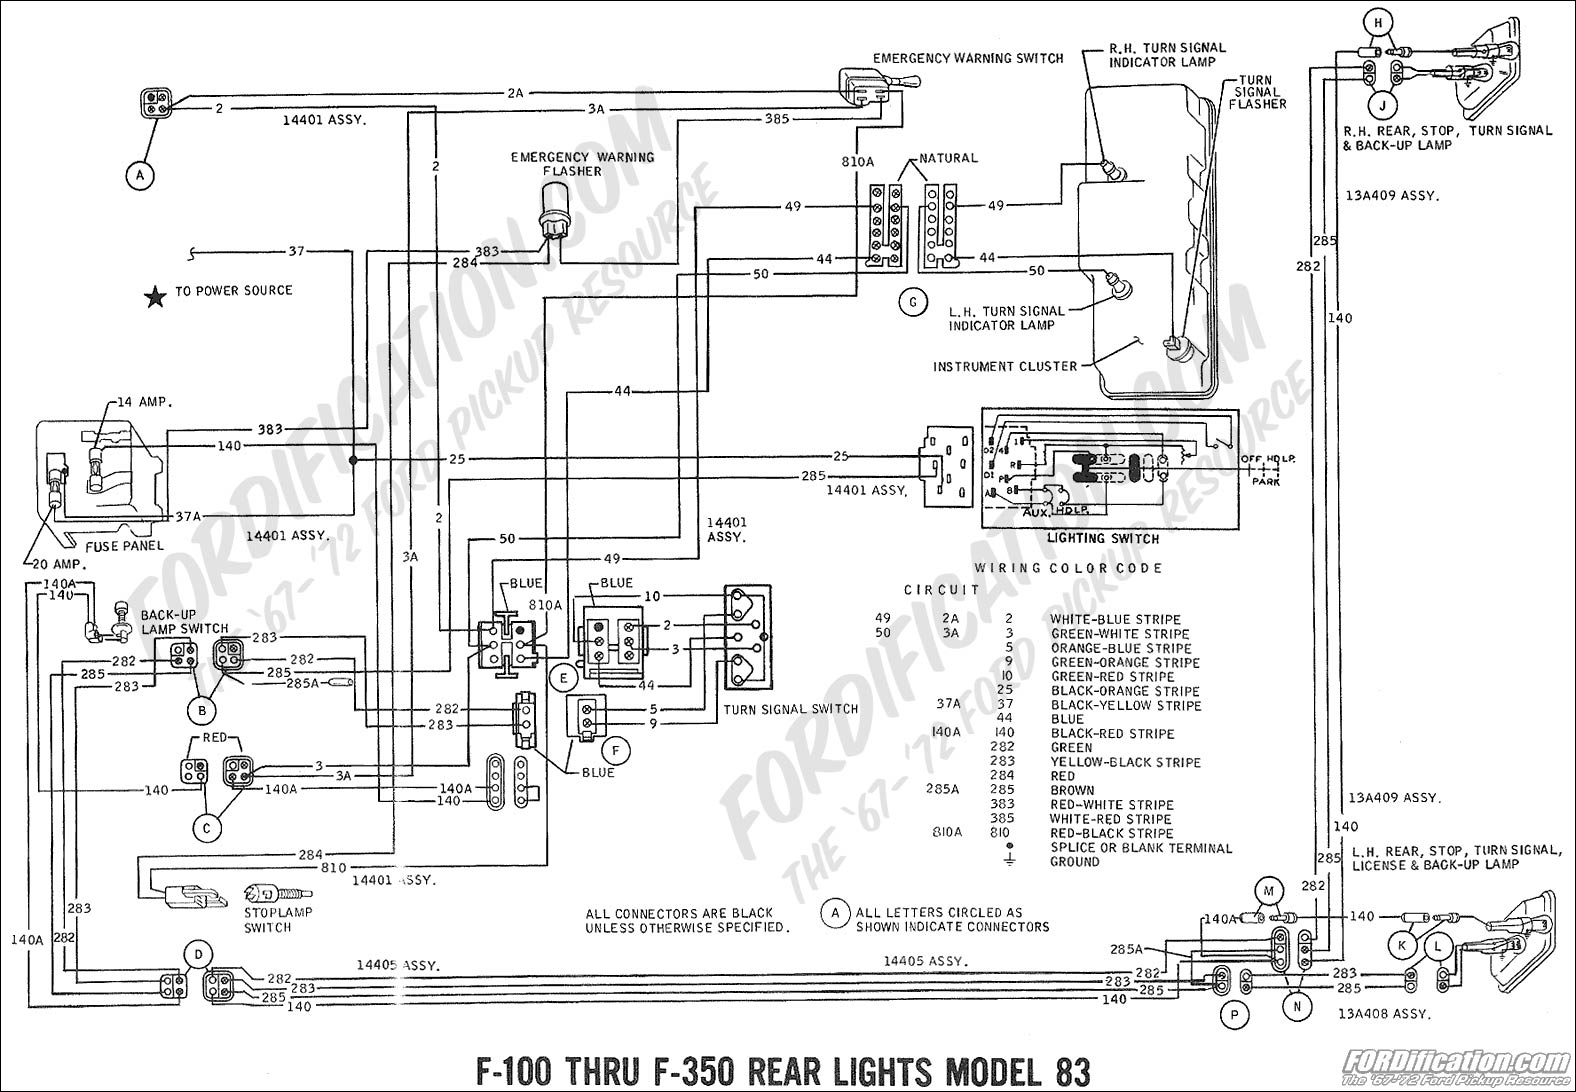 wiring_69rearlights mdl83 2 1971 ford pickup and truck wiring diagram original f100 f250 f350 1971 ford f250 wiring diagram at crackthecode.co